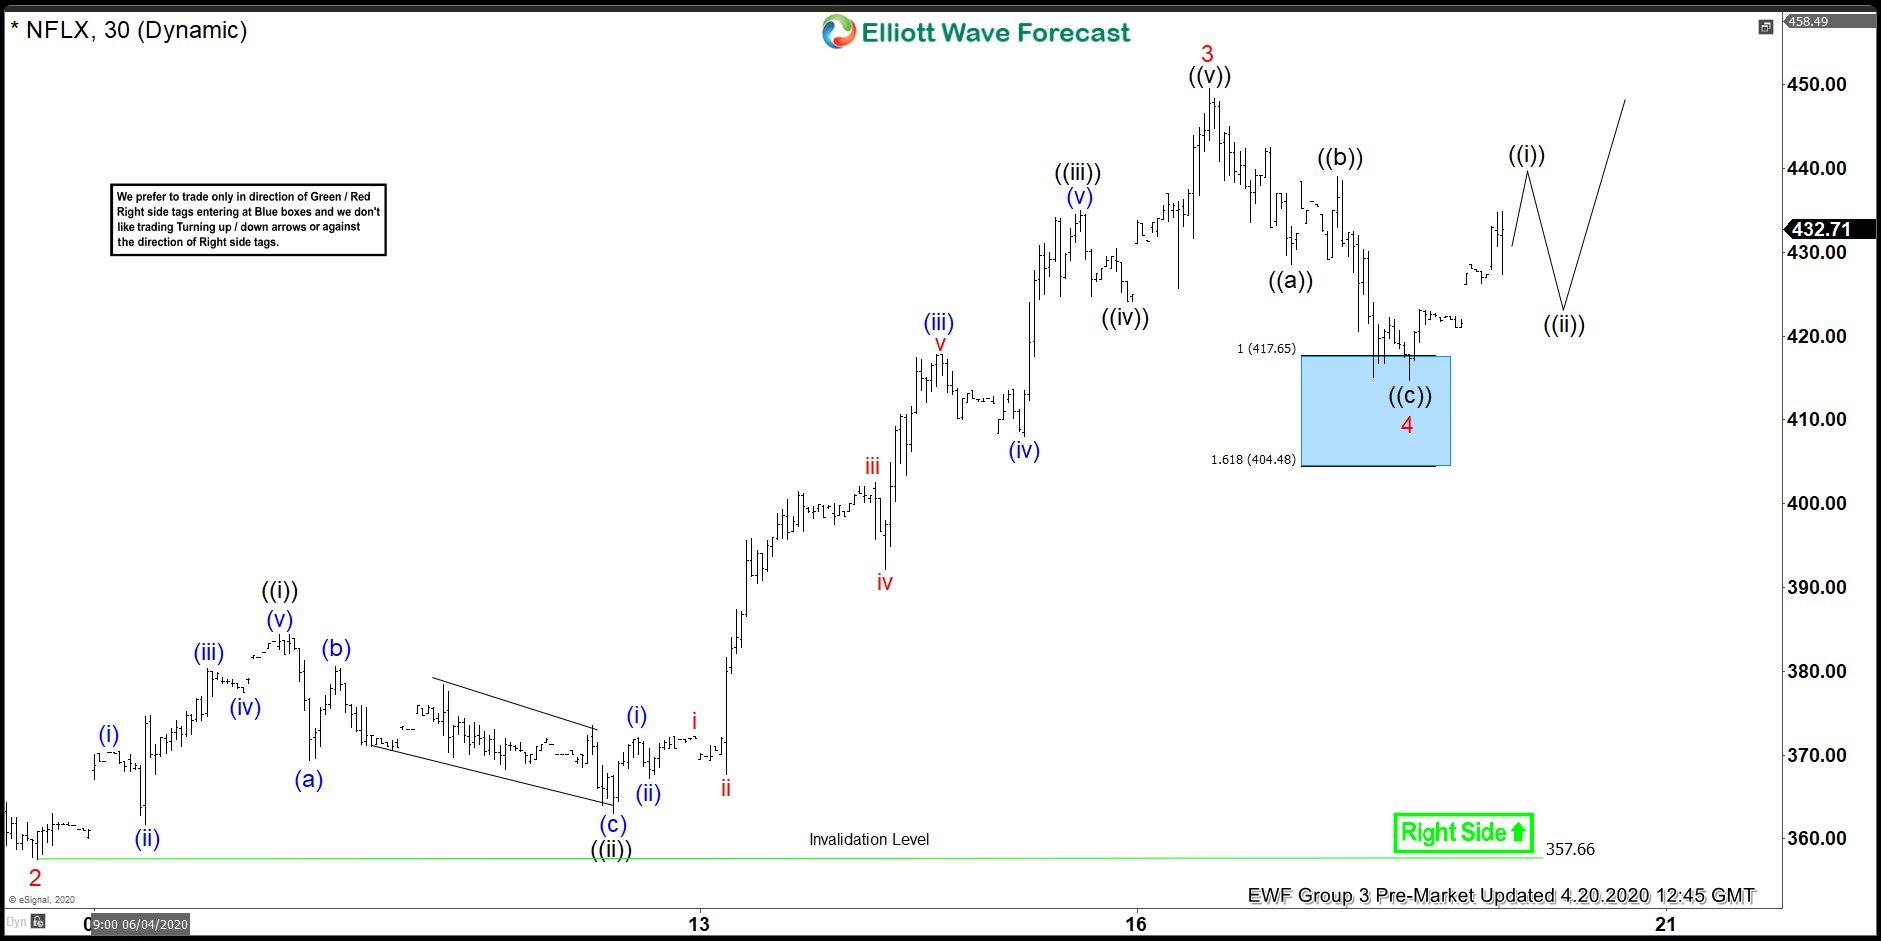 NFLX Ended 5 Waves Up In From The 290.47 Low